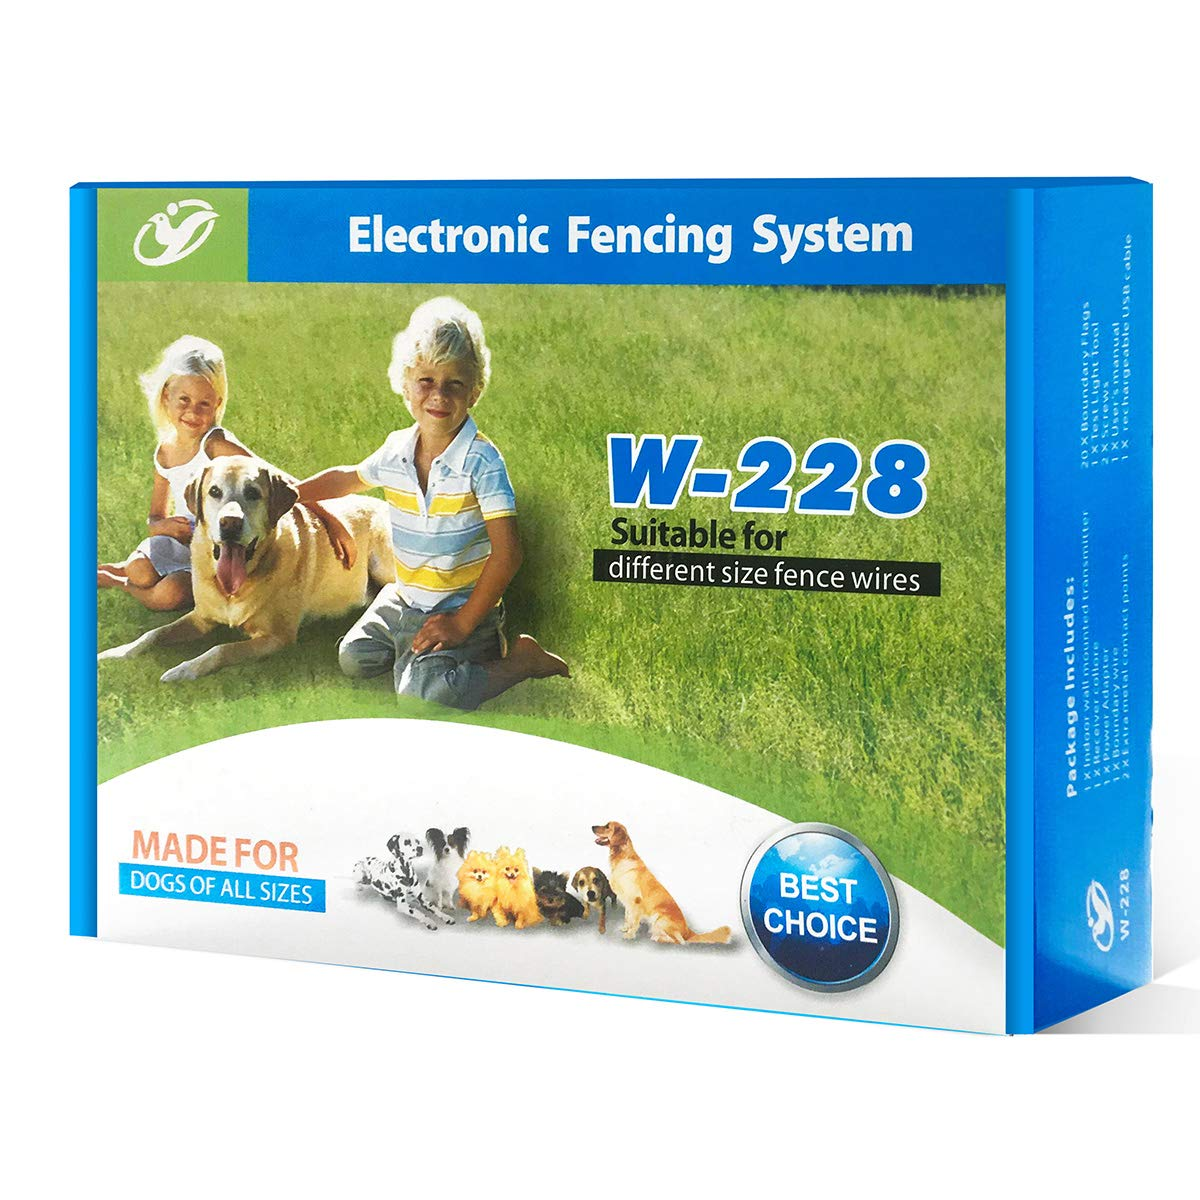 Wireless Fence For Dogs ,In-Ground Electric Dog Fence,Easy Installation Above Ground or Below Ground,Waterproof Wire and Collars